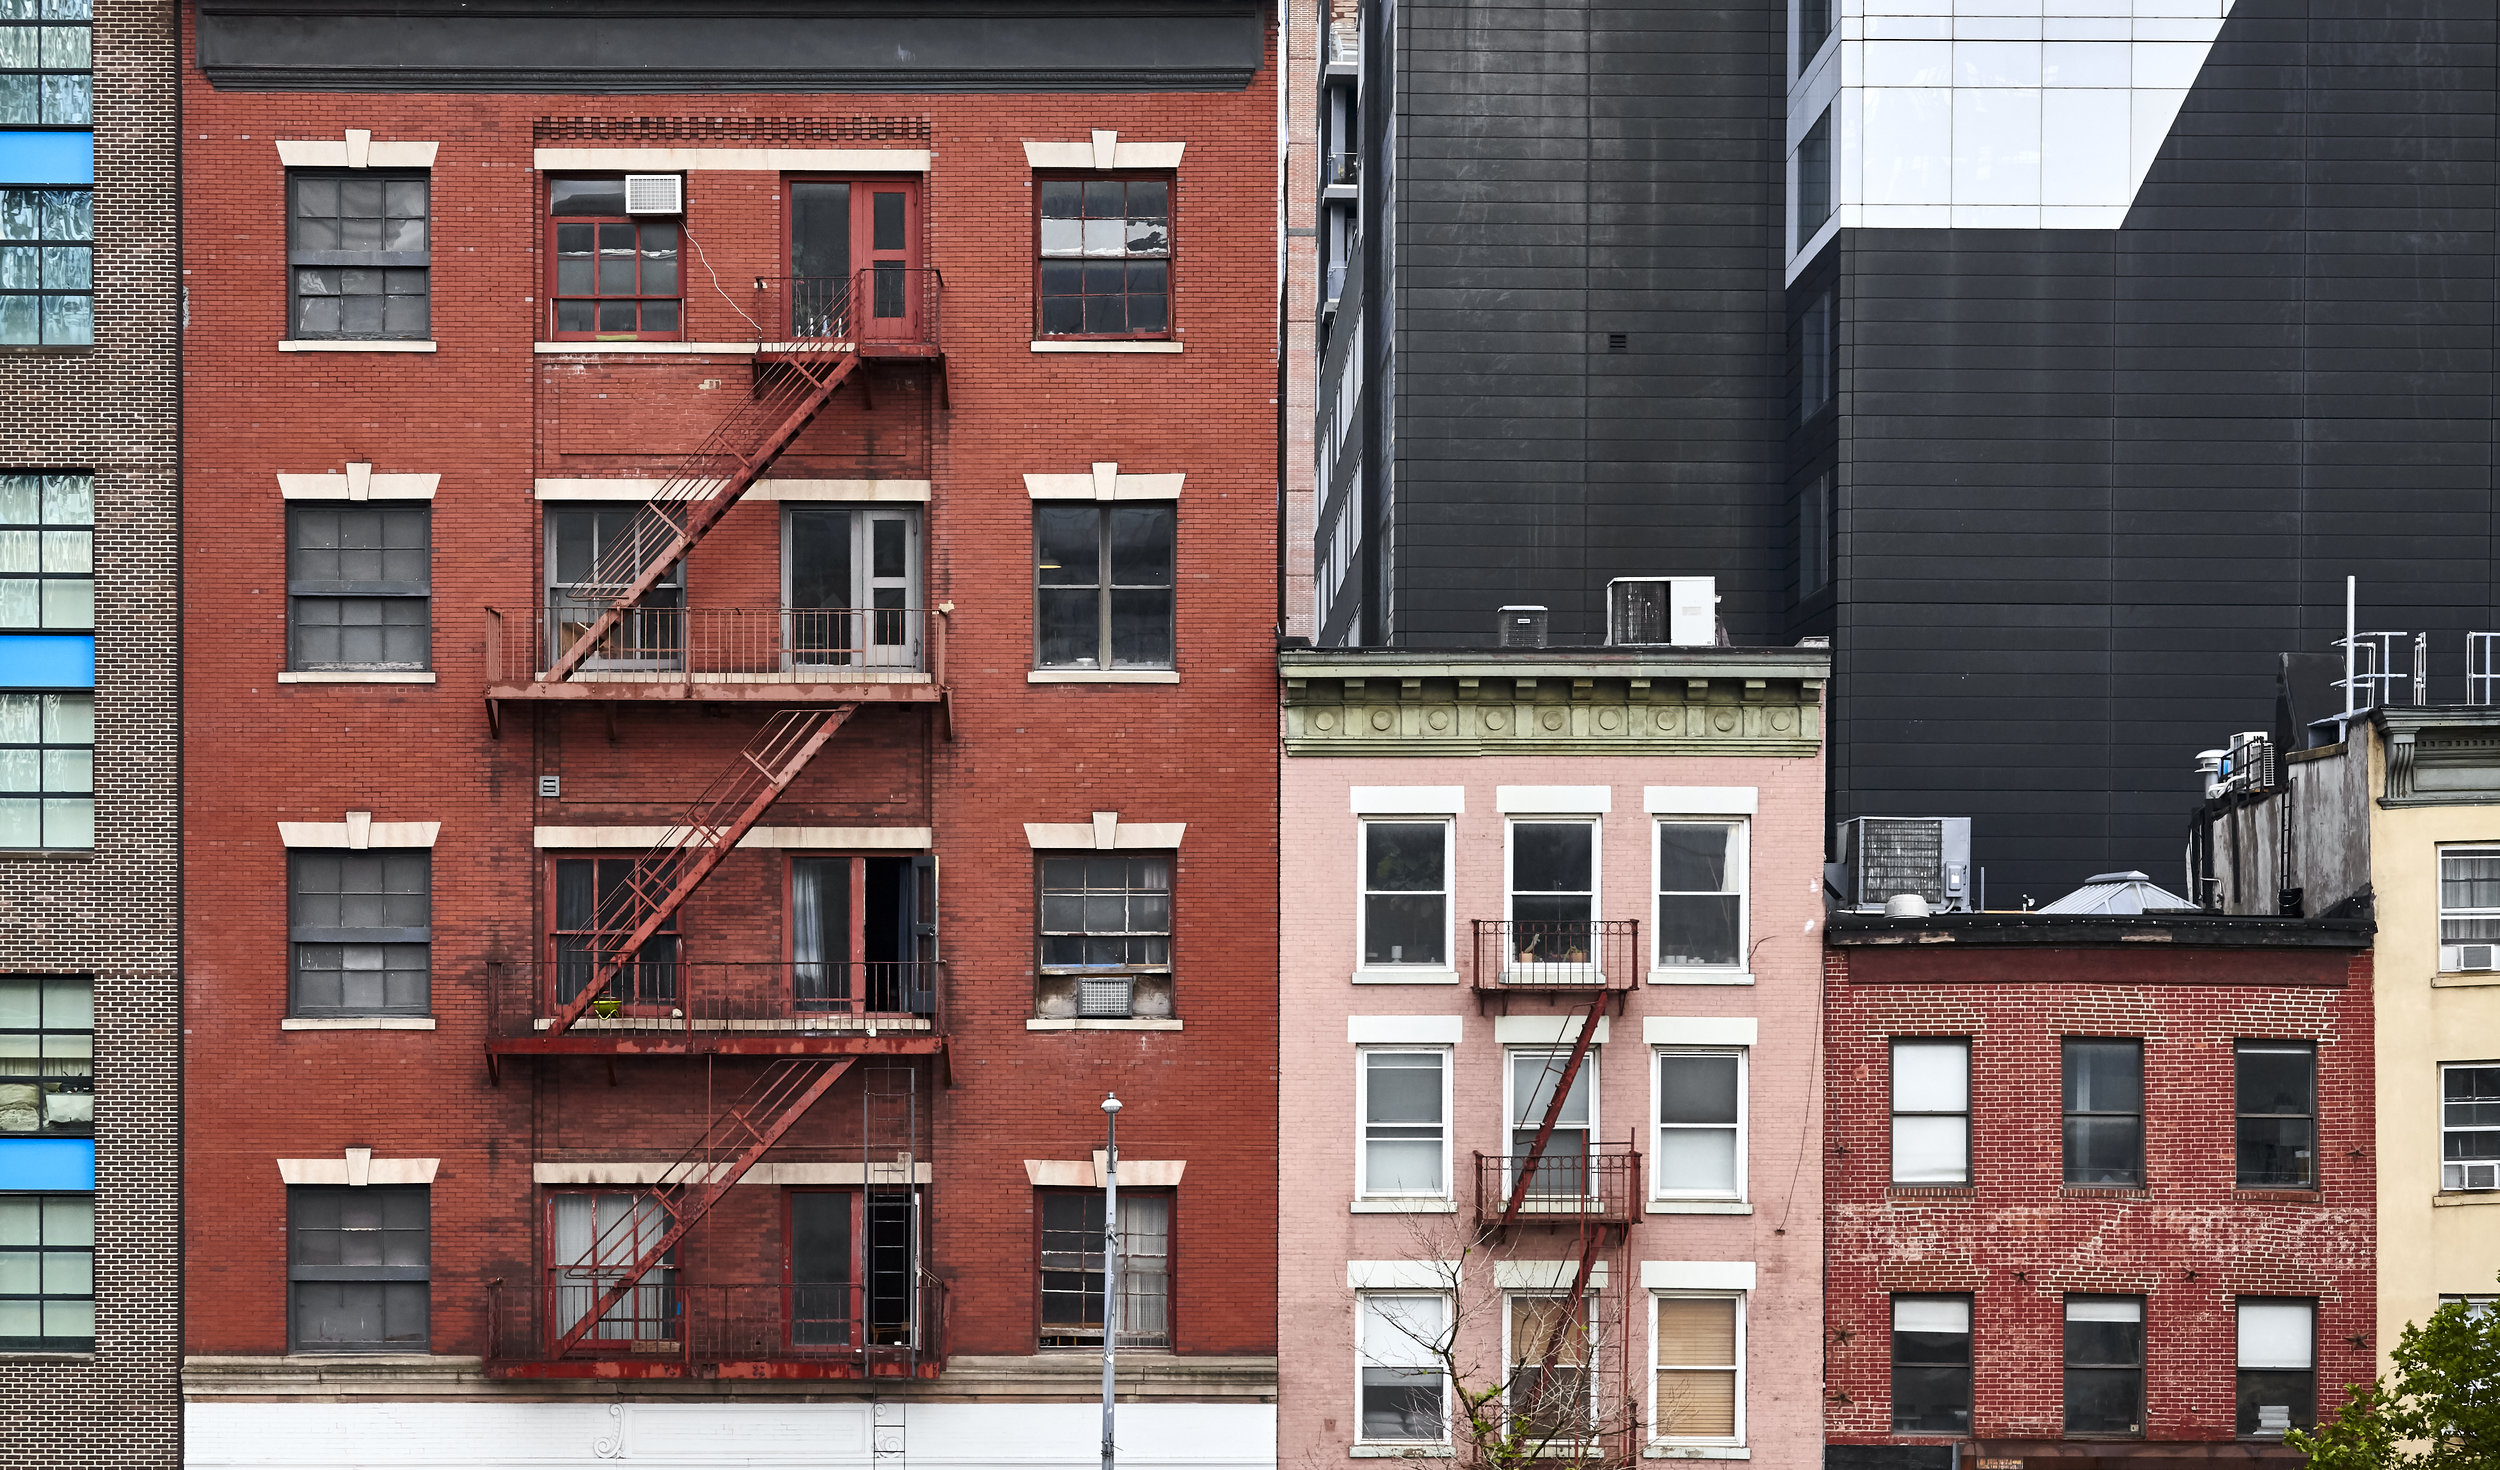 apartments in new york city, expensive rental costs. One bedroom apartment home rent price. monthly budget travel expenses FI/RE financially independent Financial Independence Retire Early keep a budget finances savings money how to